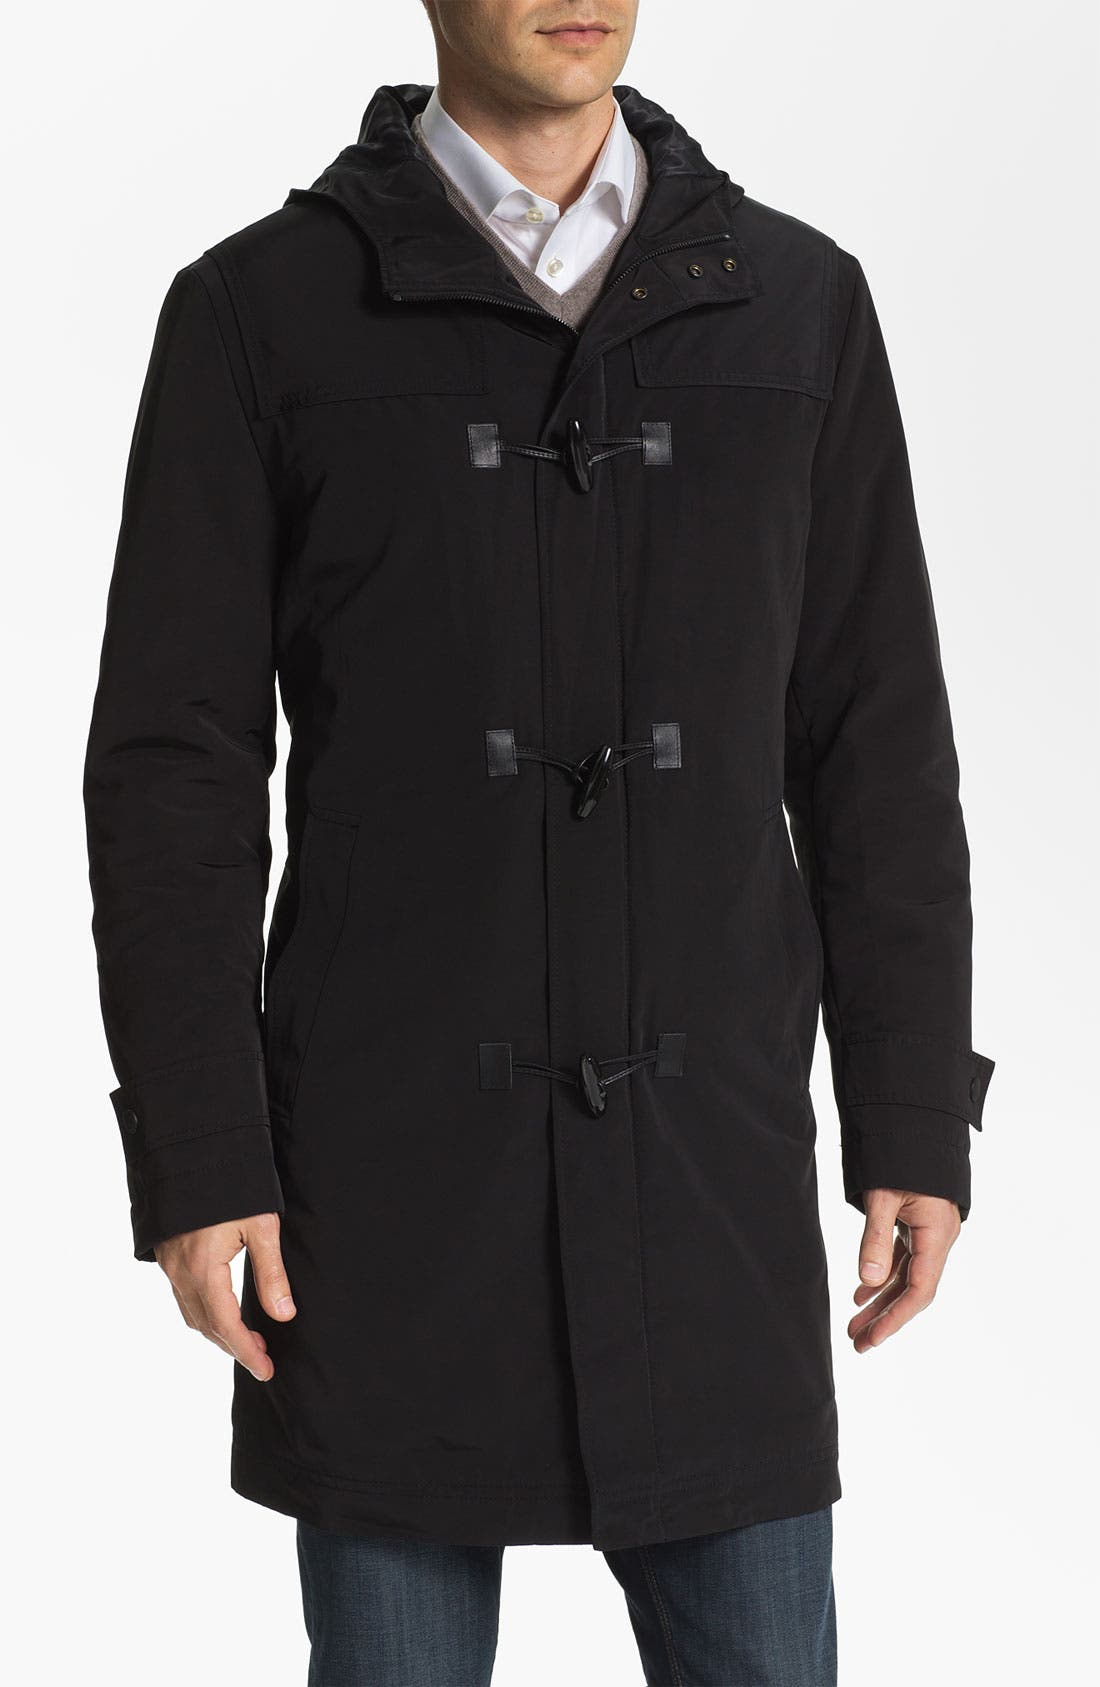 Alternate Image 1 Selected - BOSS Black 'Glade' Wrinkle Resistant Duffle Coat